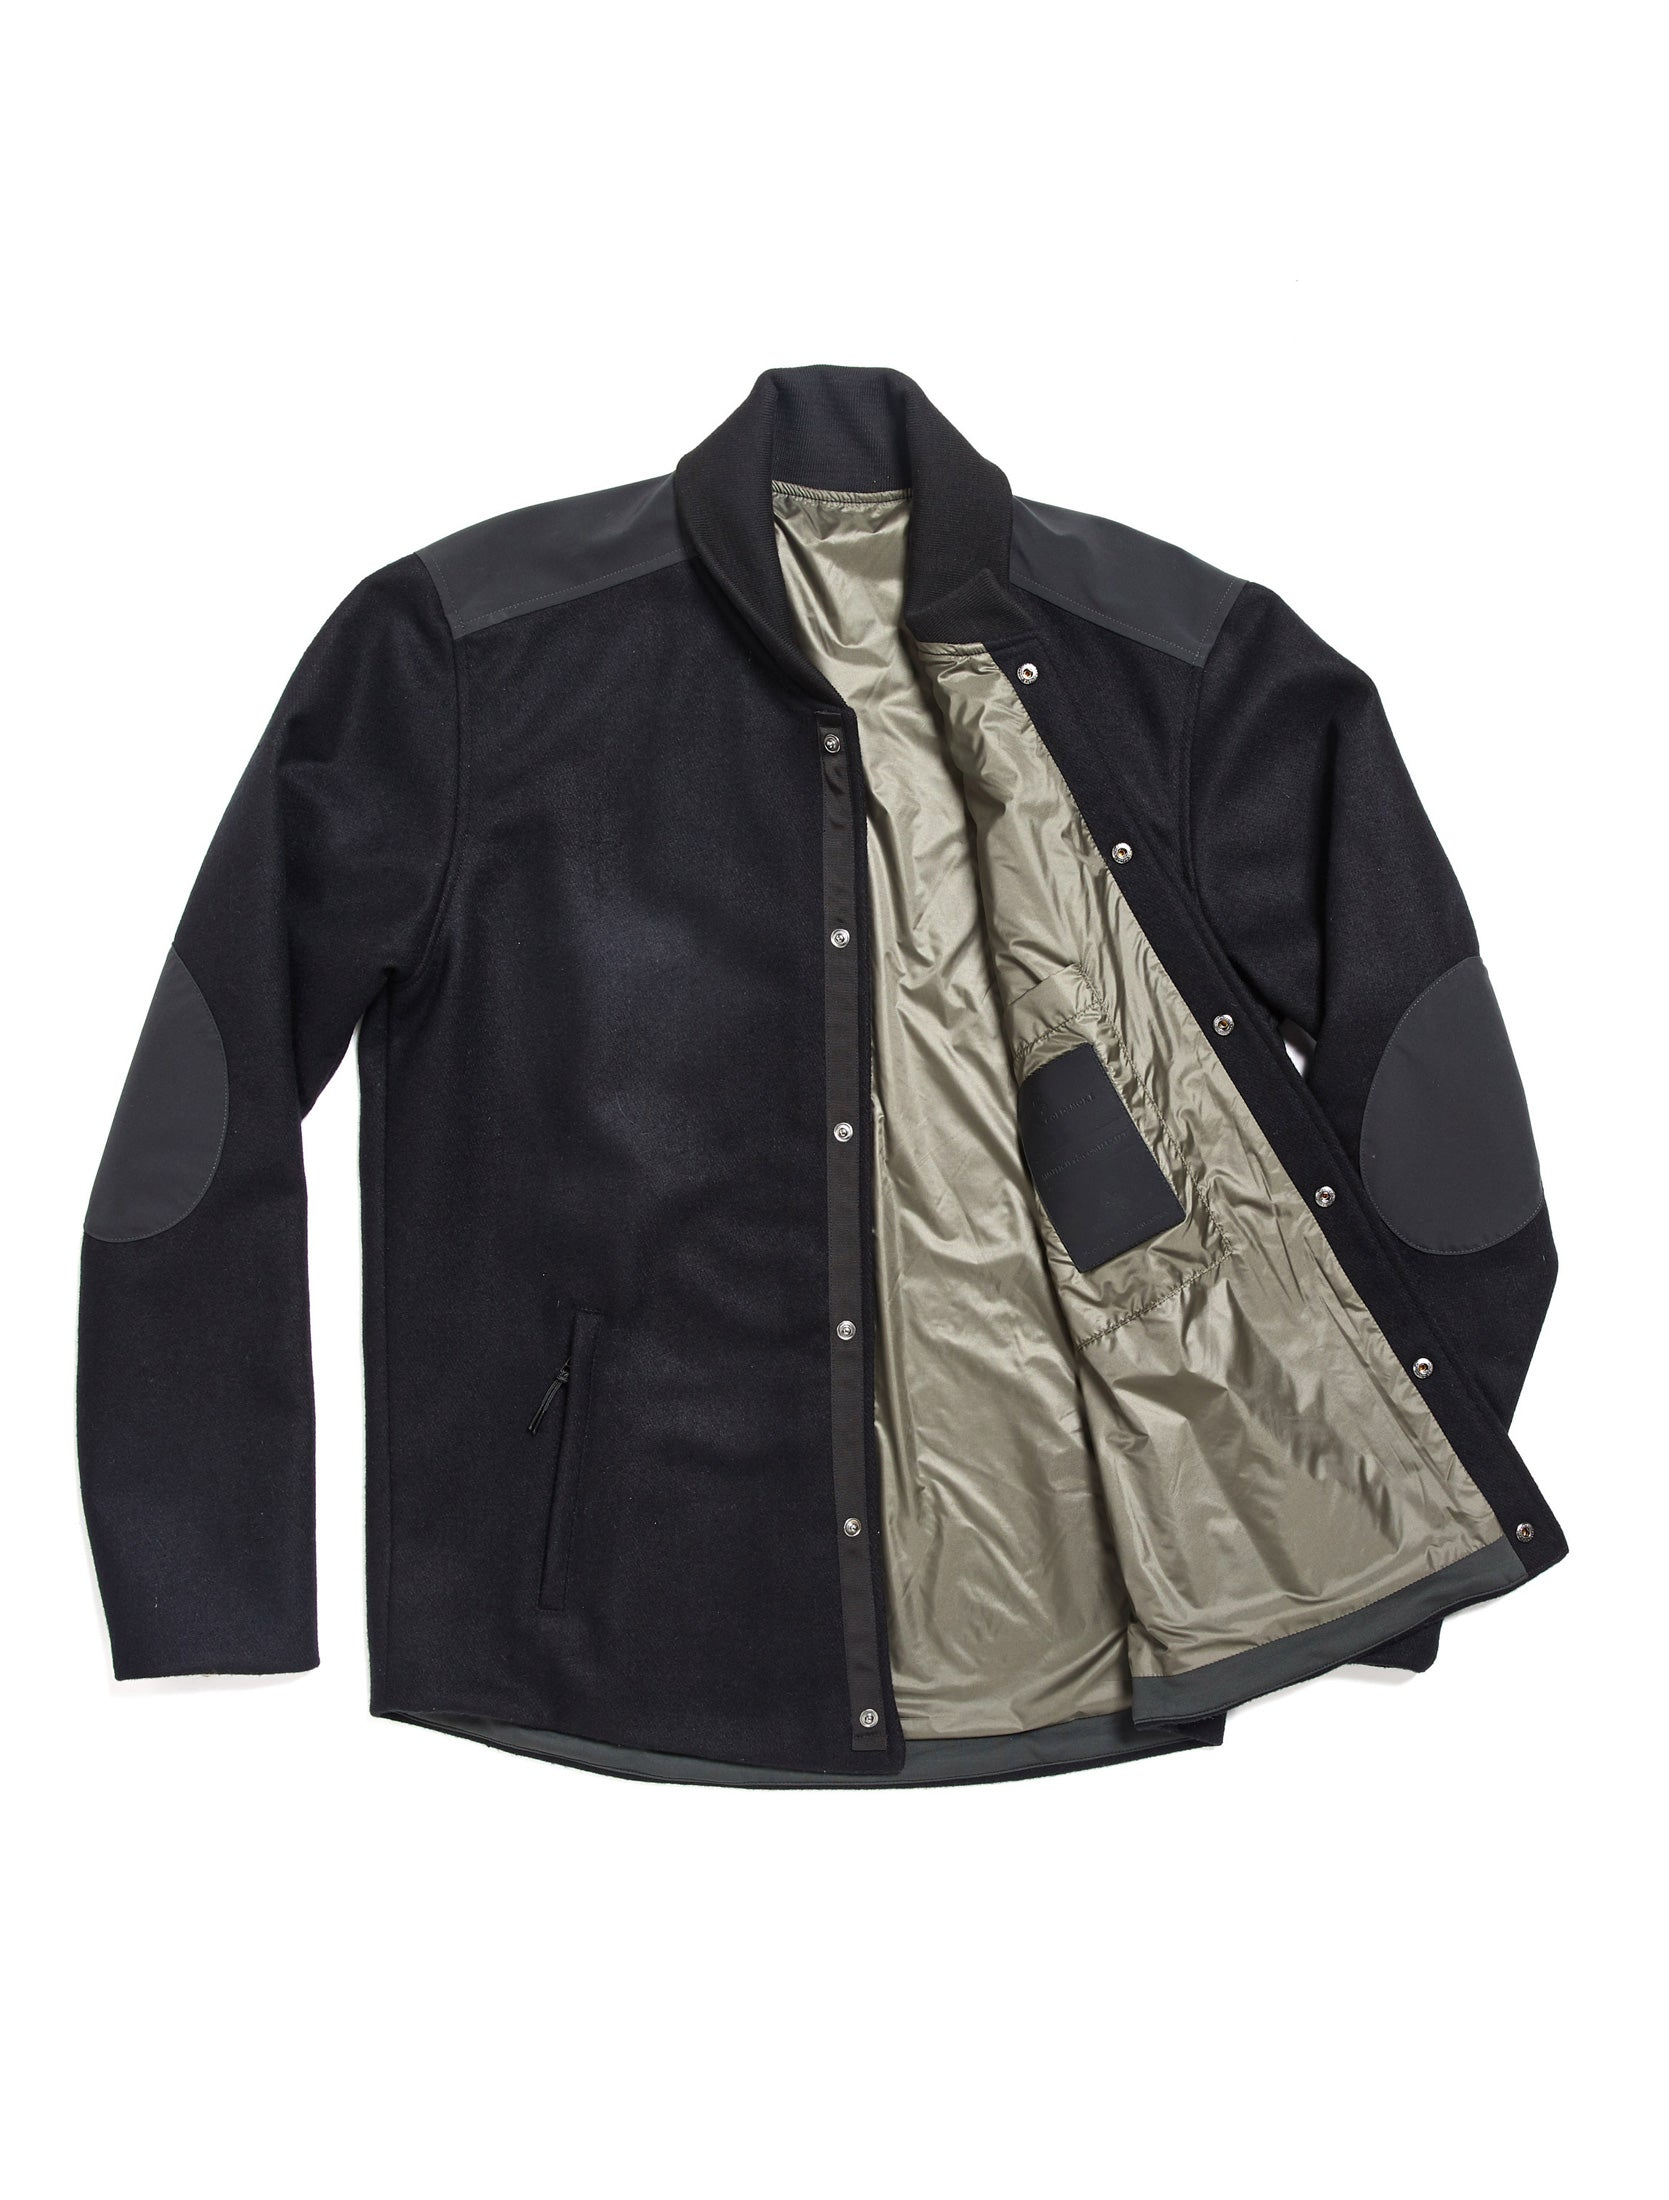 Kunnak Shirt Jacket